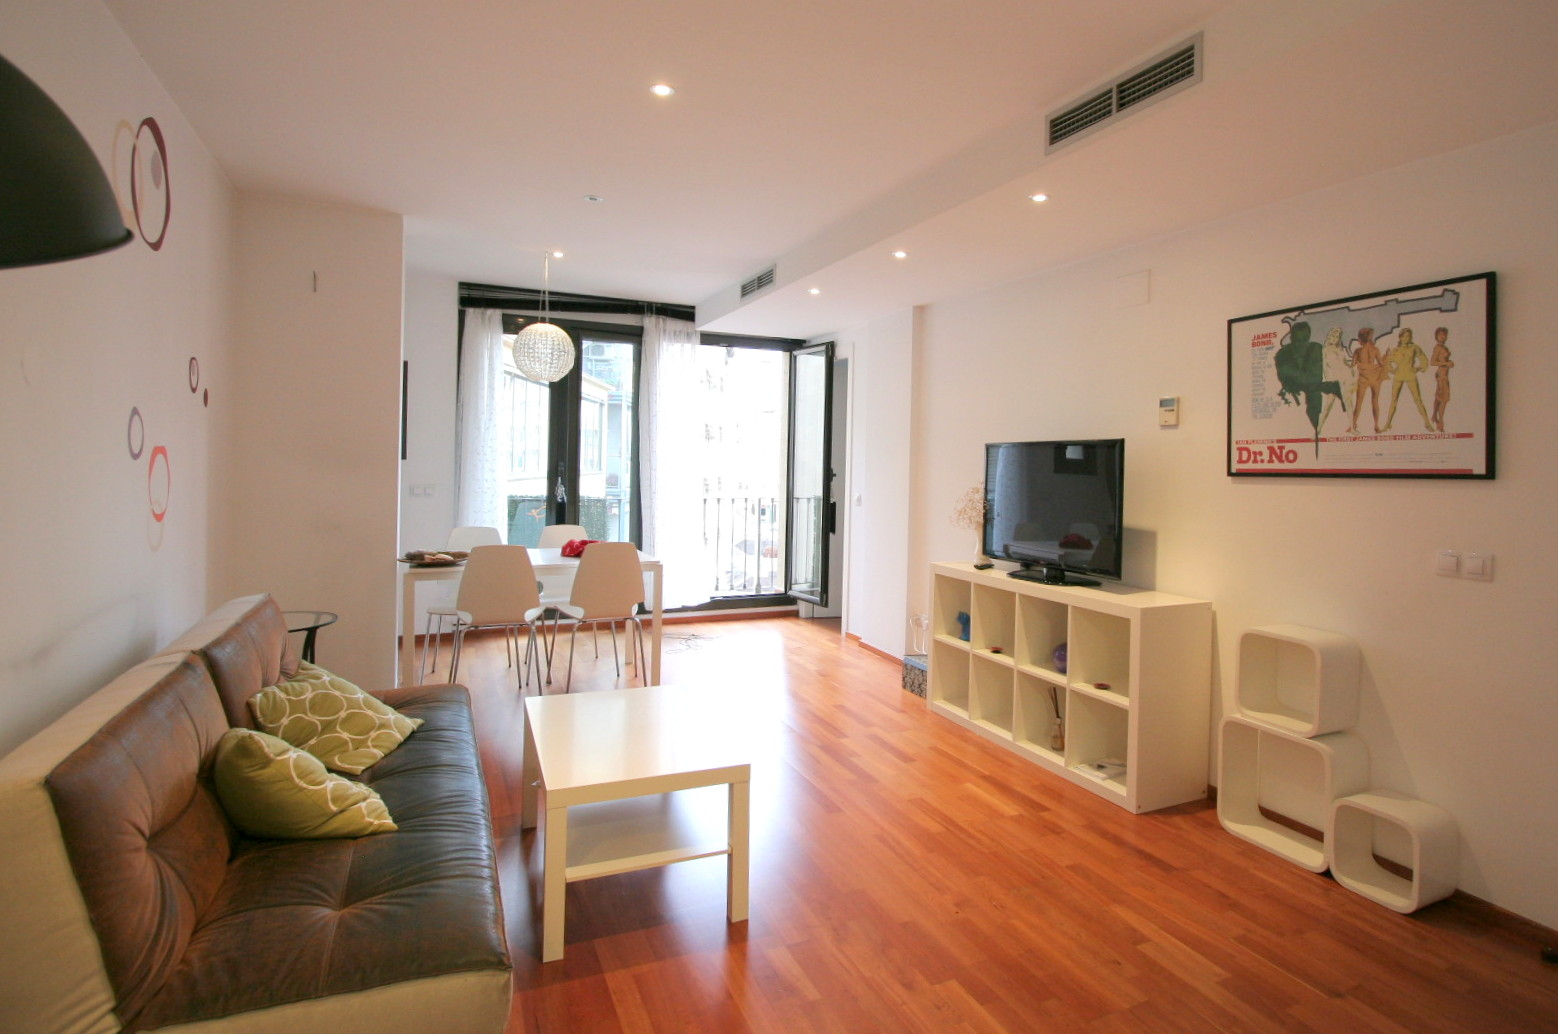 Easyapartmentrental charming 2 bedroom apartment near plaza catalunya for 2 bedroom 2 bathroom for rent near me